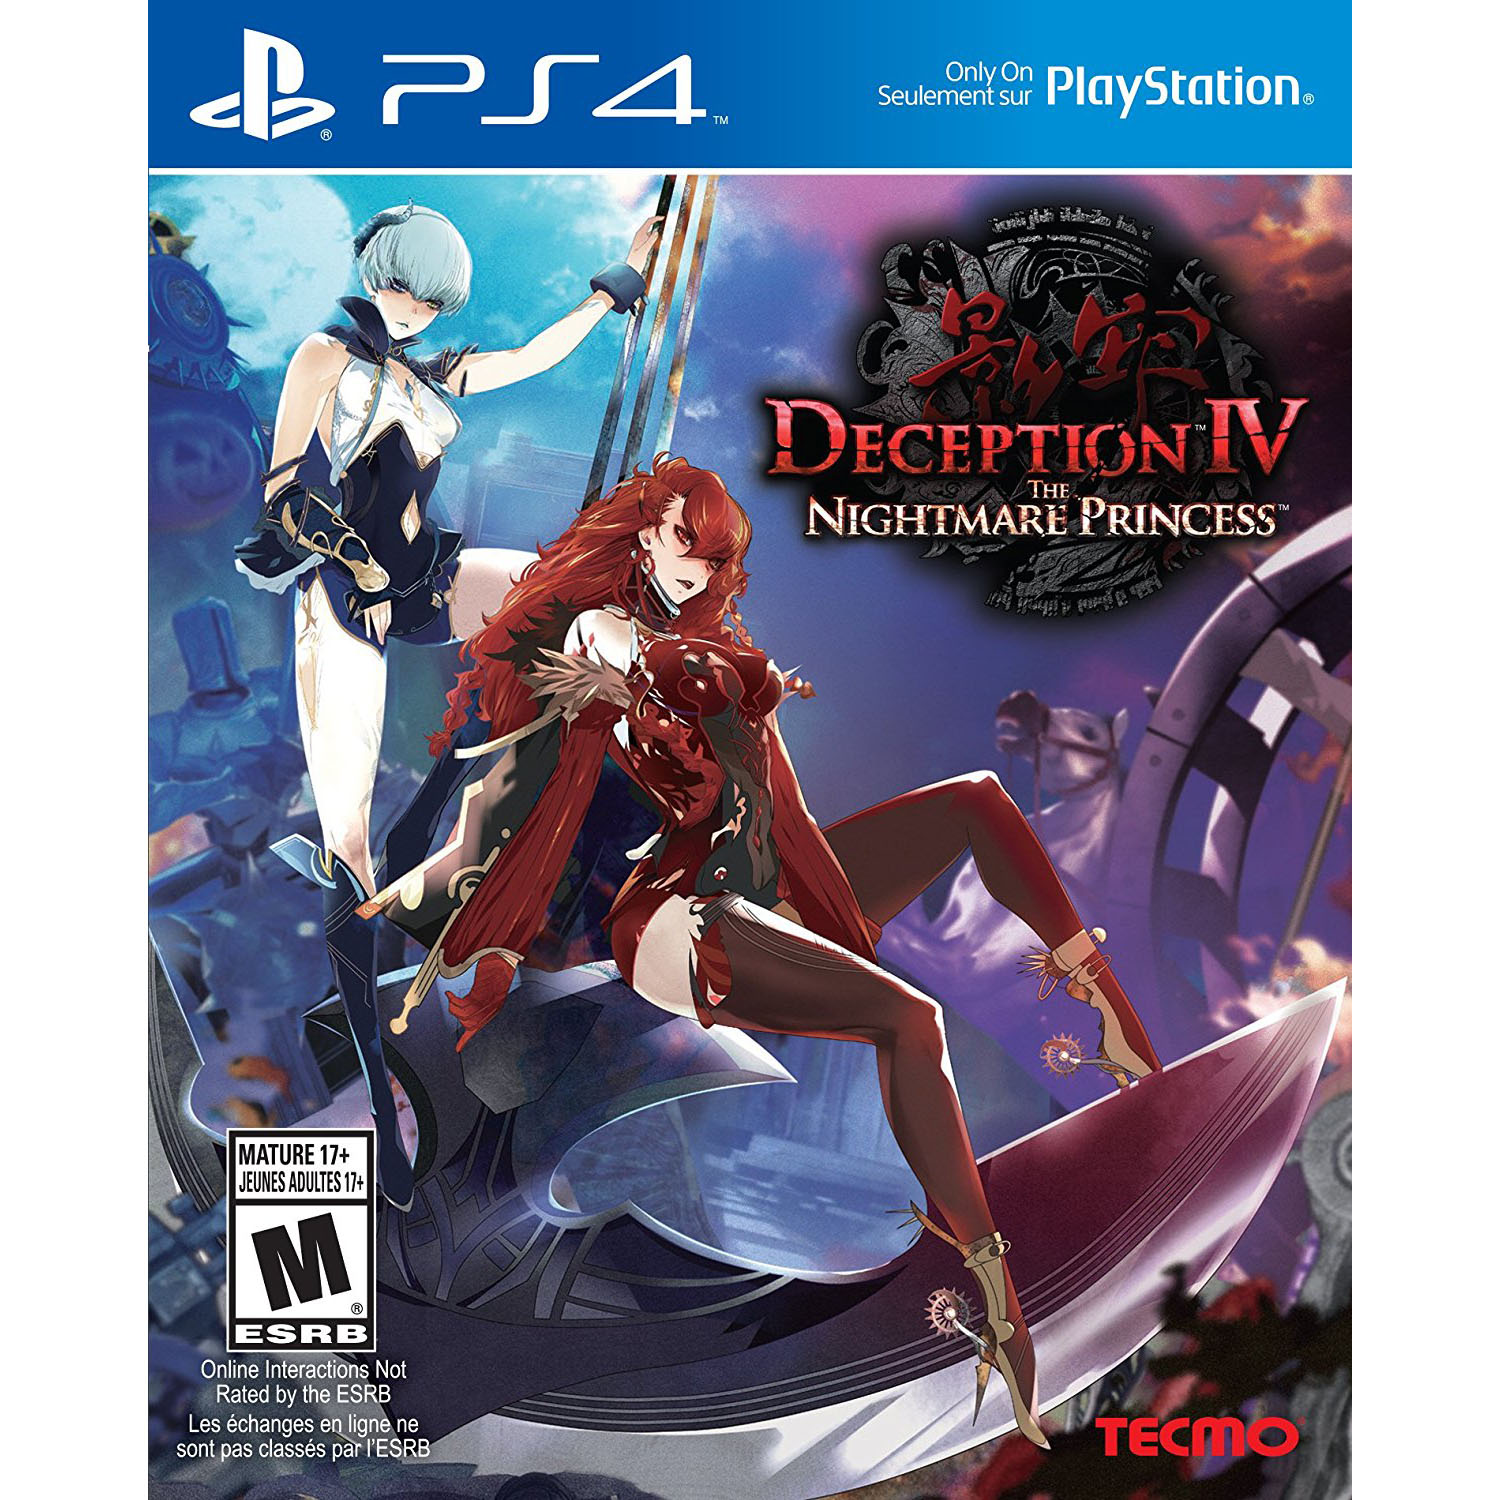 Sony PlayStation 4 Deception IV: The Nightmare Princess Video Game